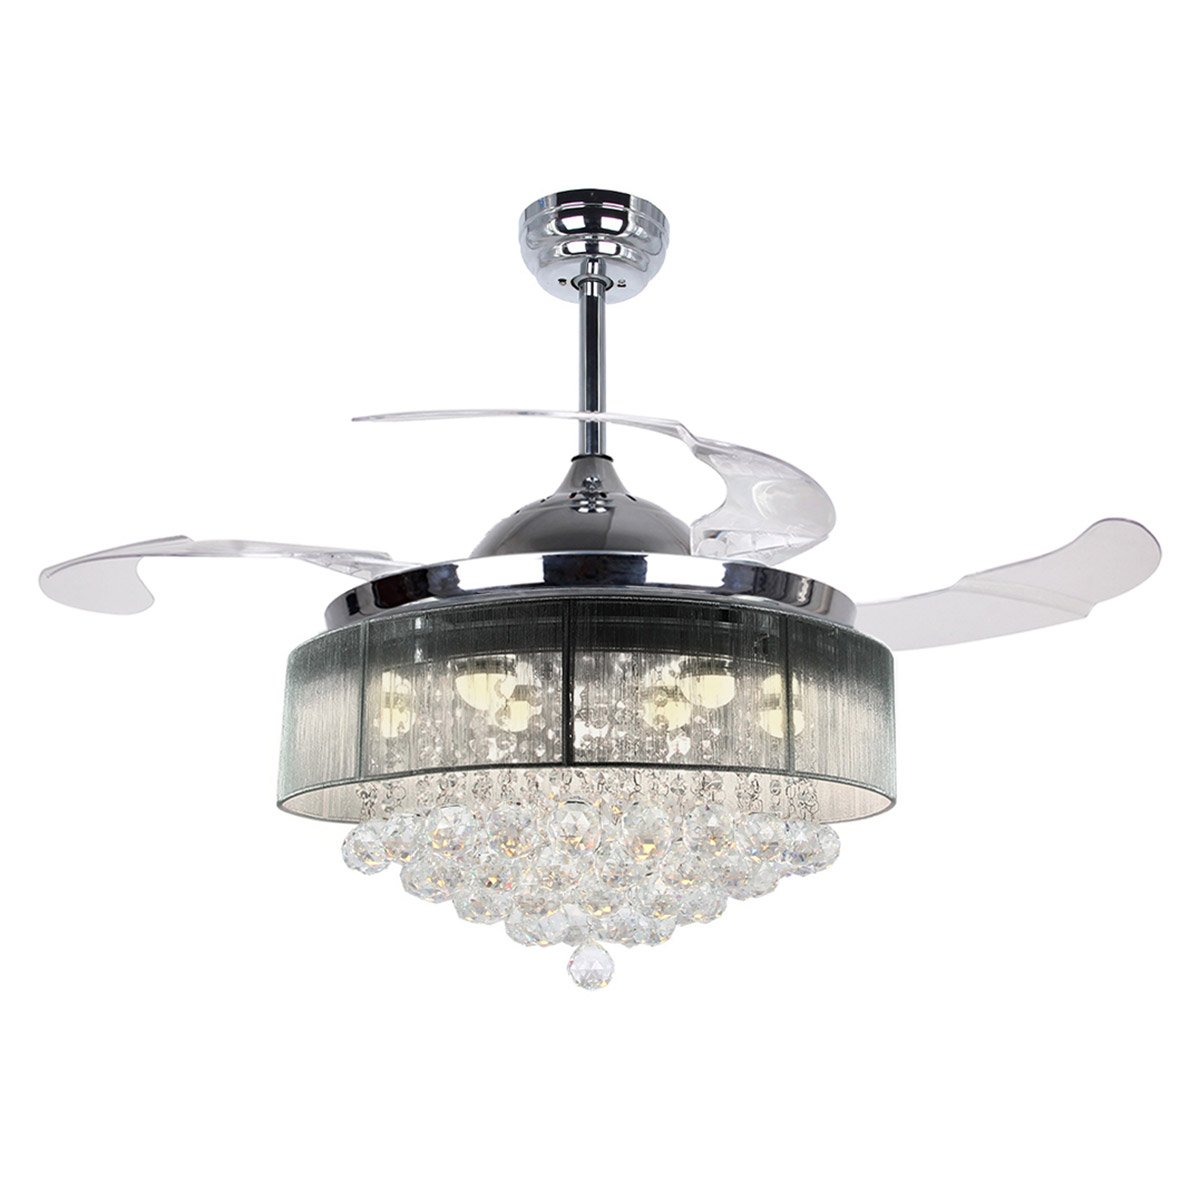 Parrot uncle ceiling fans with lights 42 modern led ceiling fan parrot uncle ceiling fans with lights 42 modern led ceiling fan retractable blades crystal chandelier fan with remote control 2700k warm white arubaitofo Images